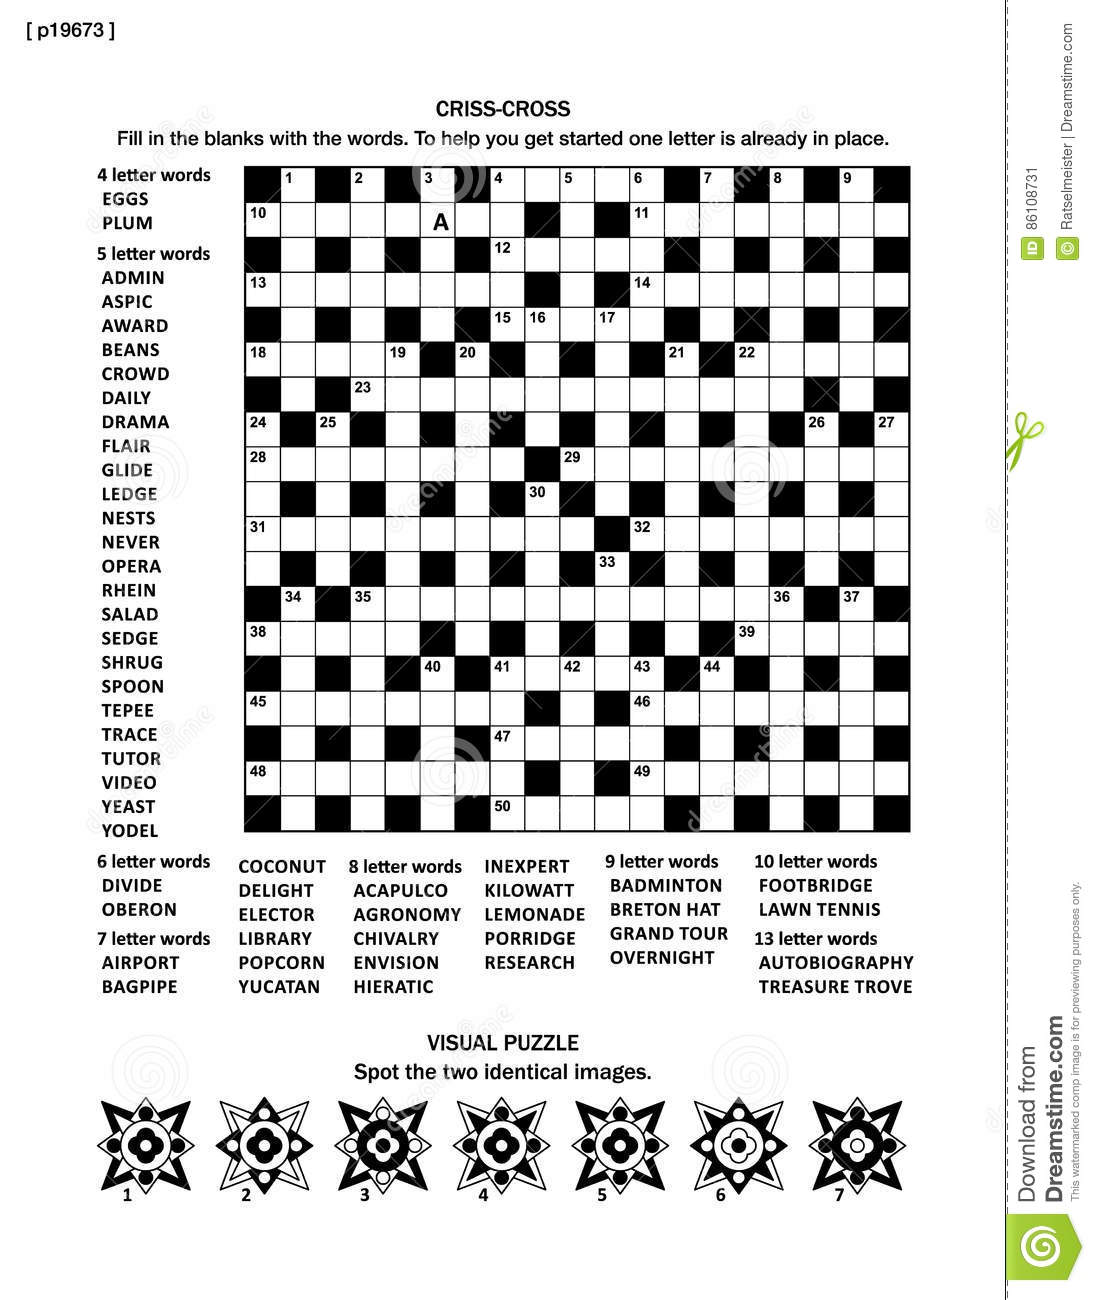 Puzzle Page With Two Puzzles 19x19 Criss Cross Word Game English Language And Visual Whimsical Shapes Black White A4 Or Letter Sized